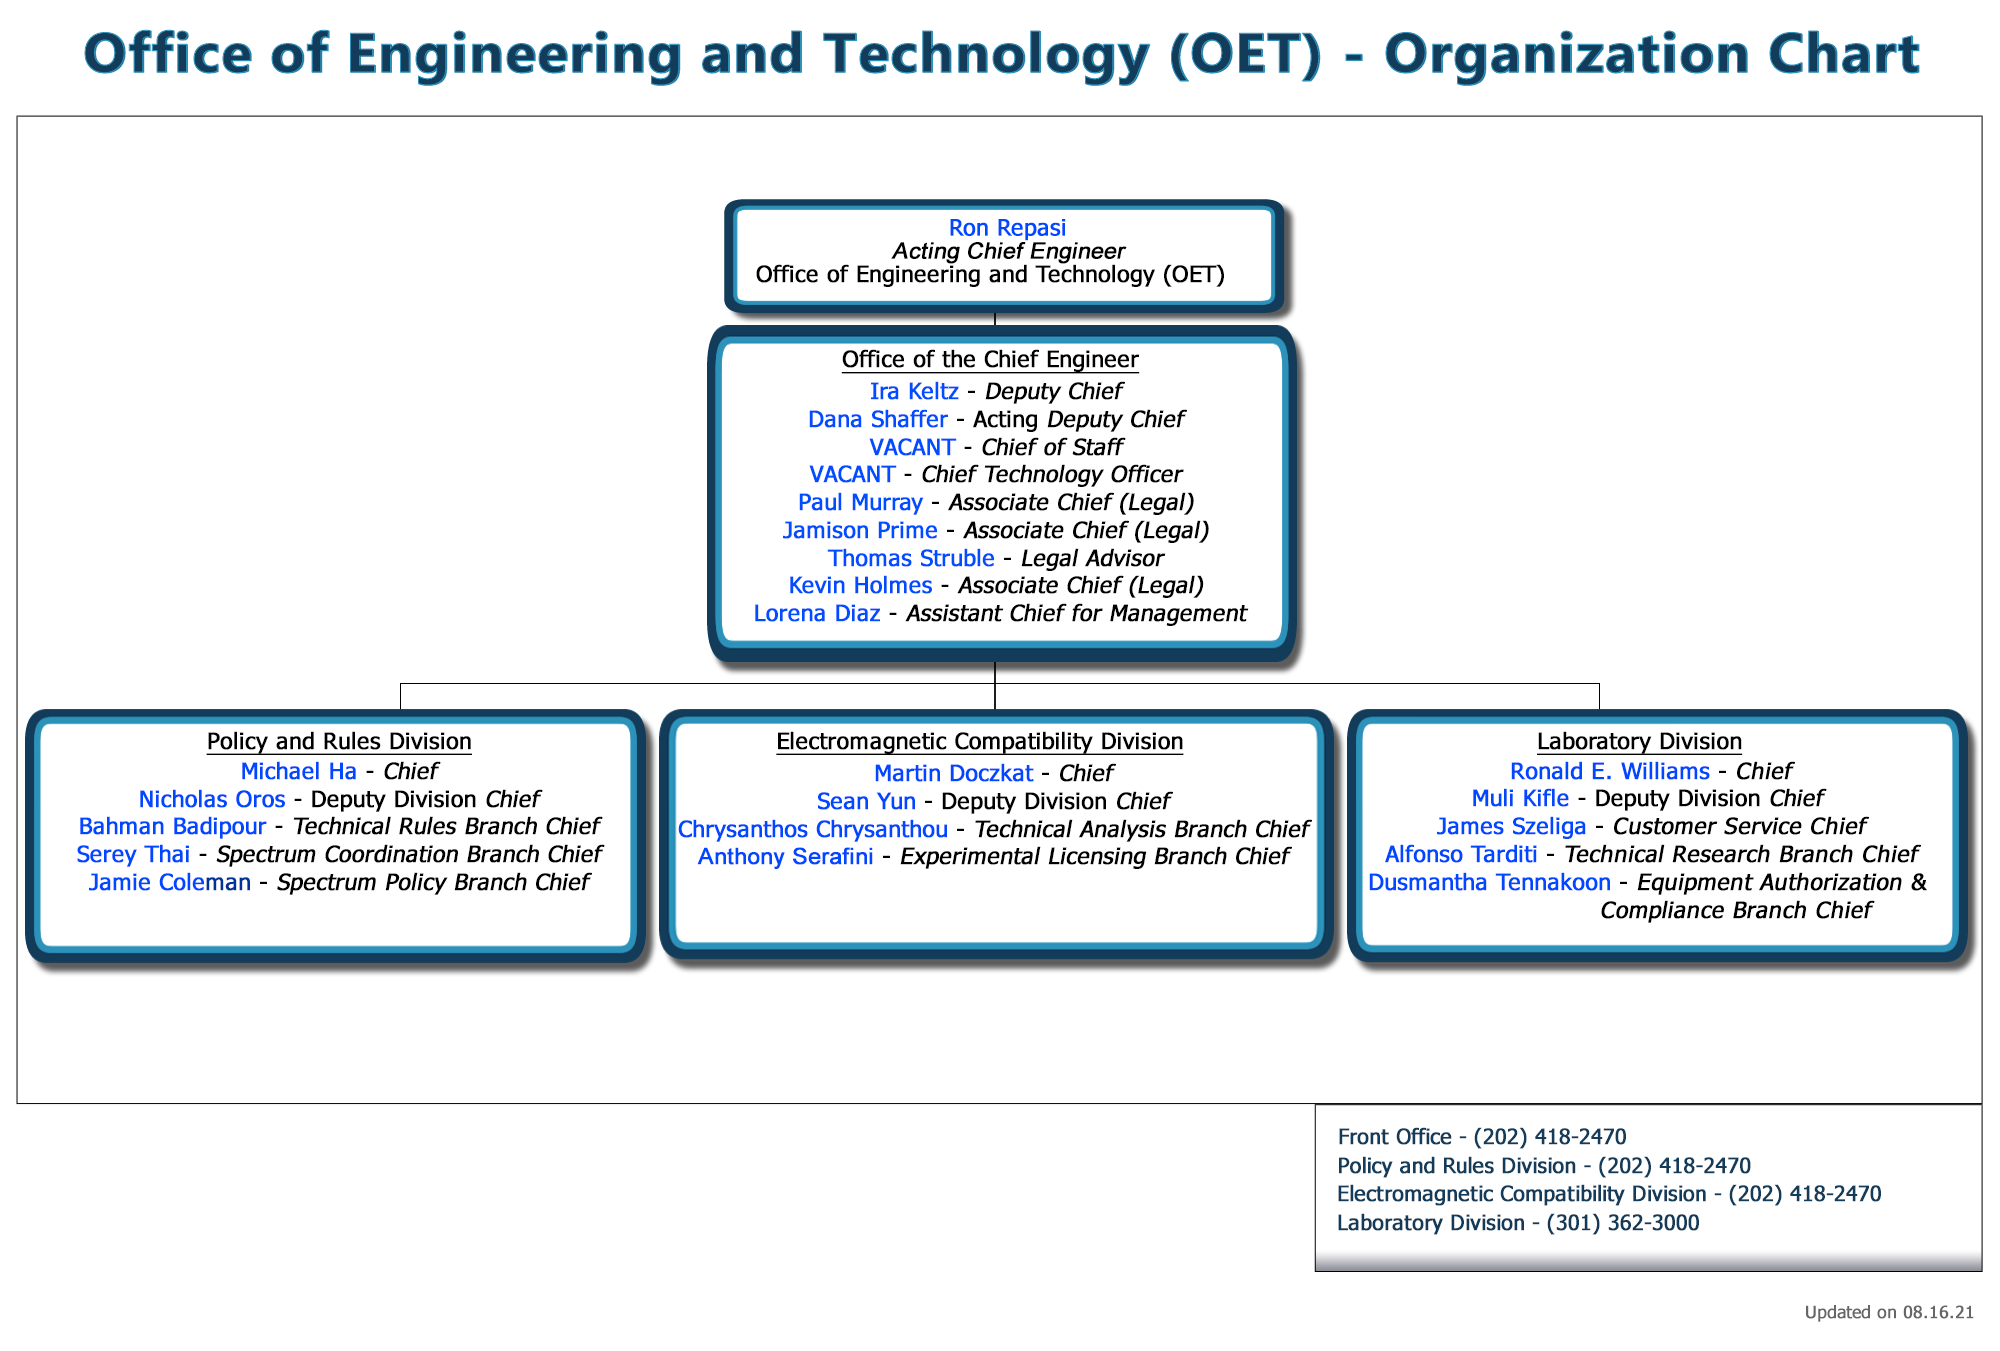 Click to print OET organization chart